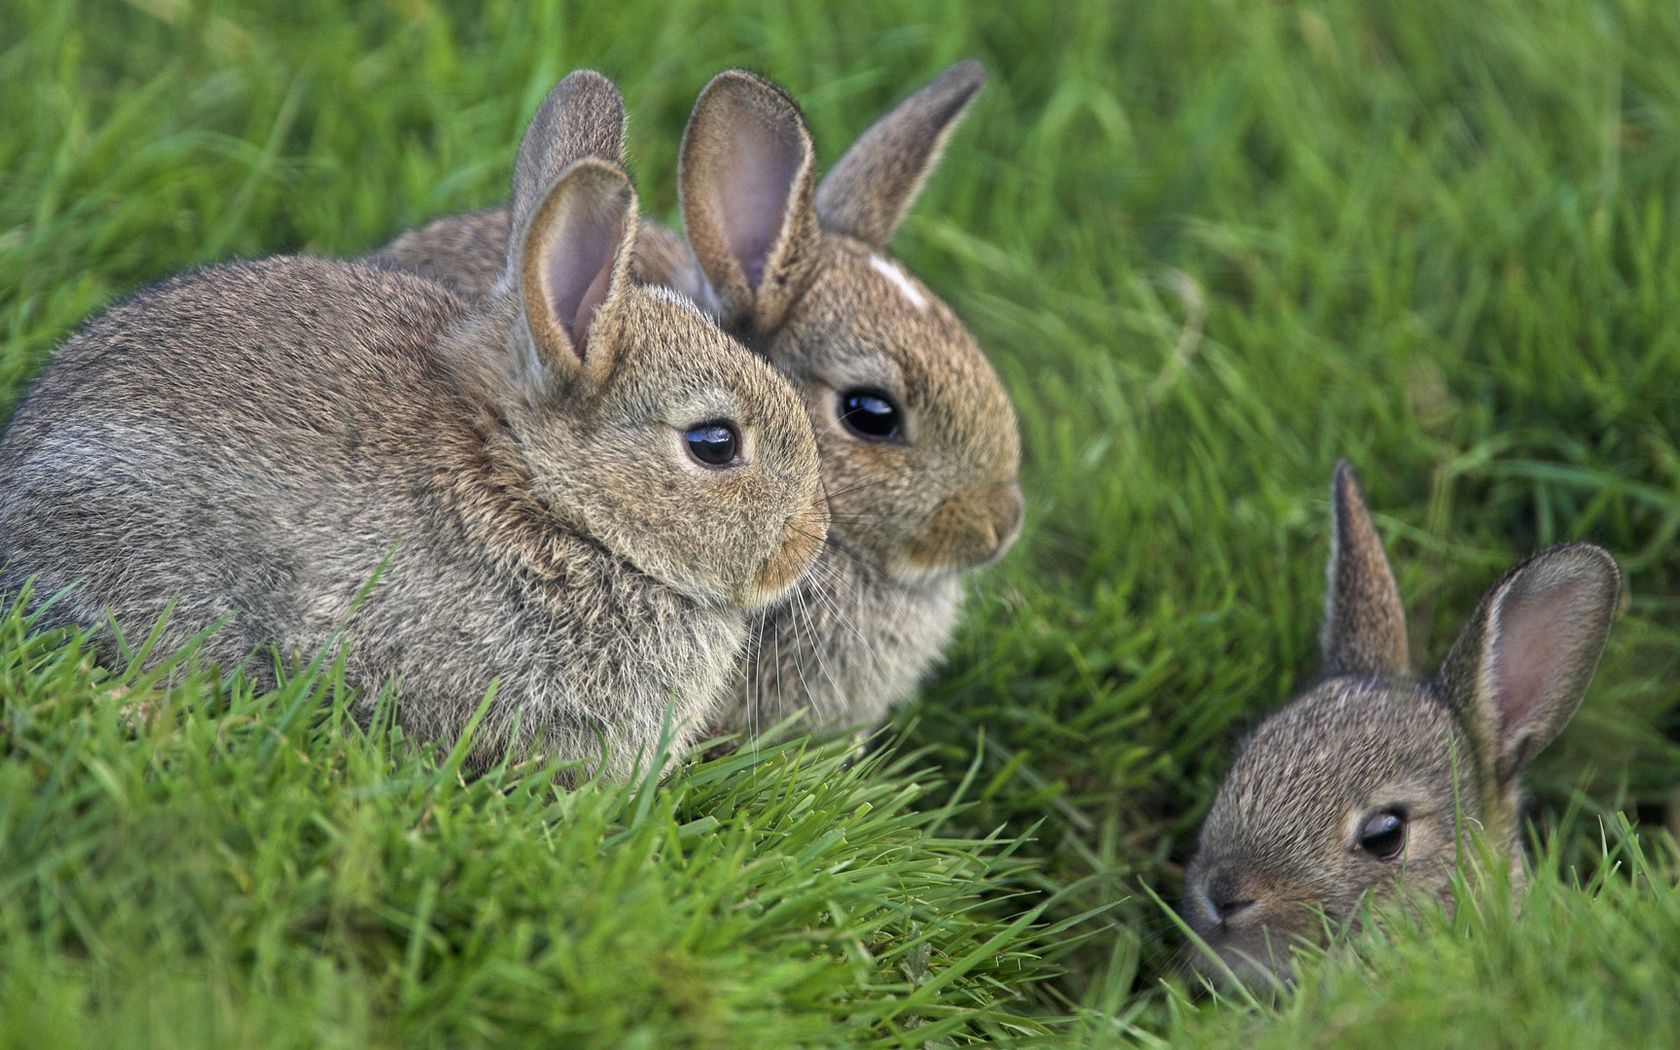 70439 download wallpaper Animals, Grass, Rabbits, Sit, Hide, Fear, Disguise, Camouflage, Three screensavers and pictures for free